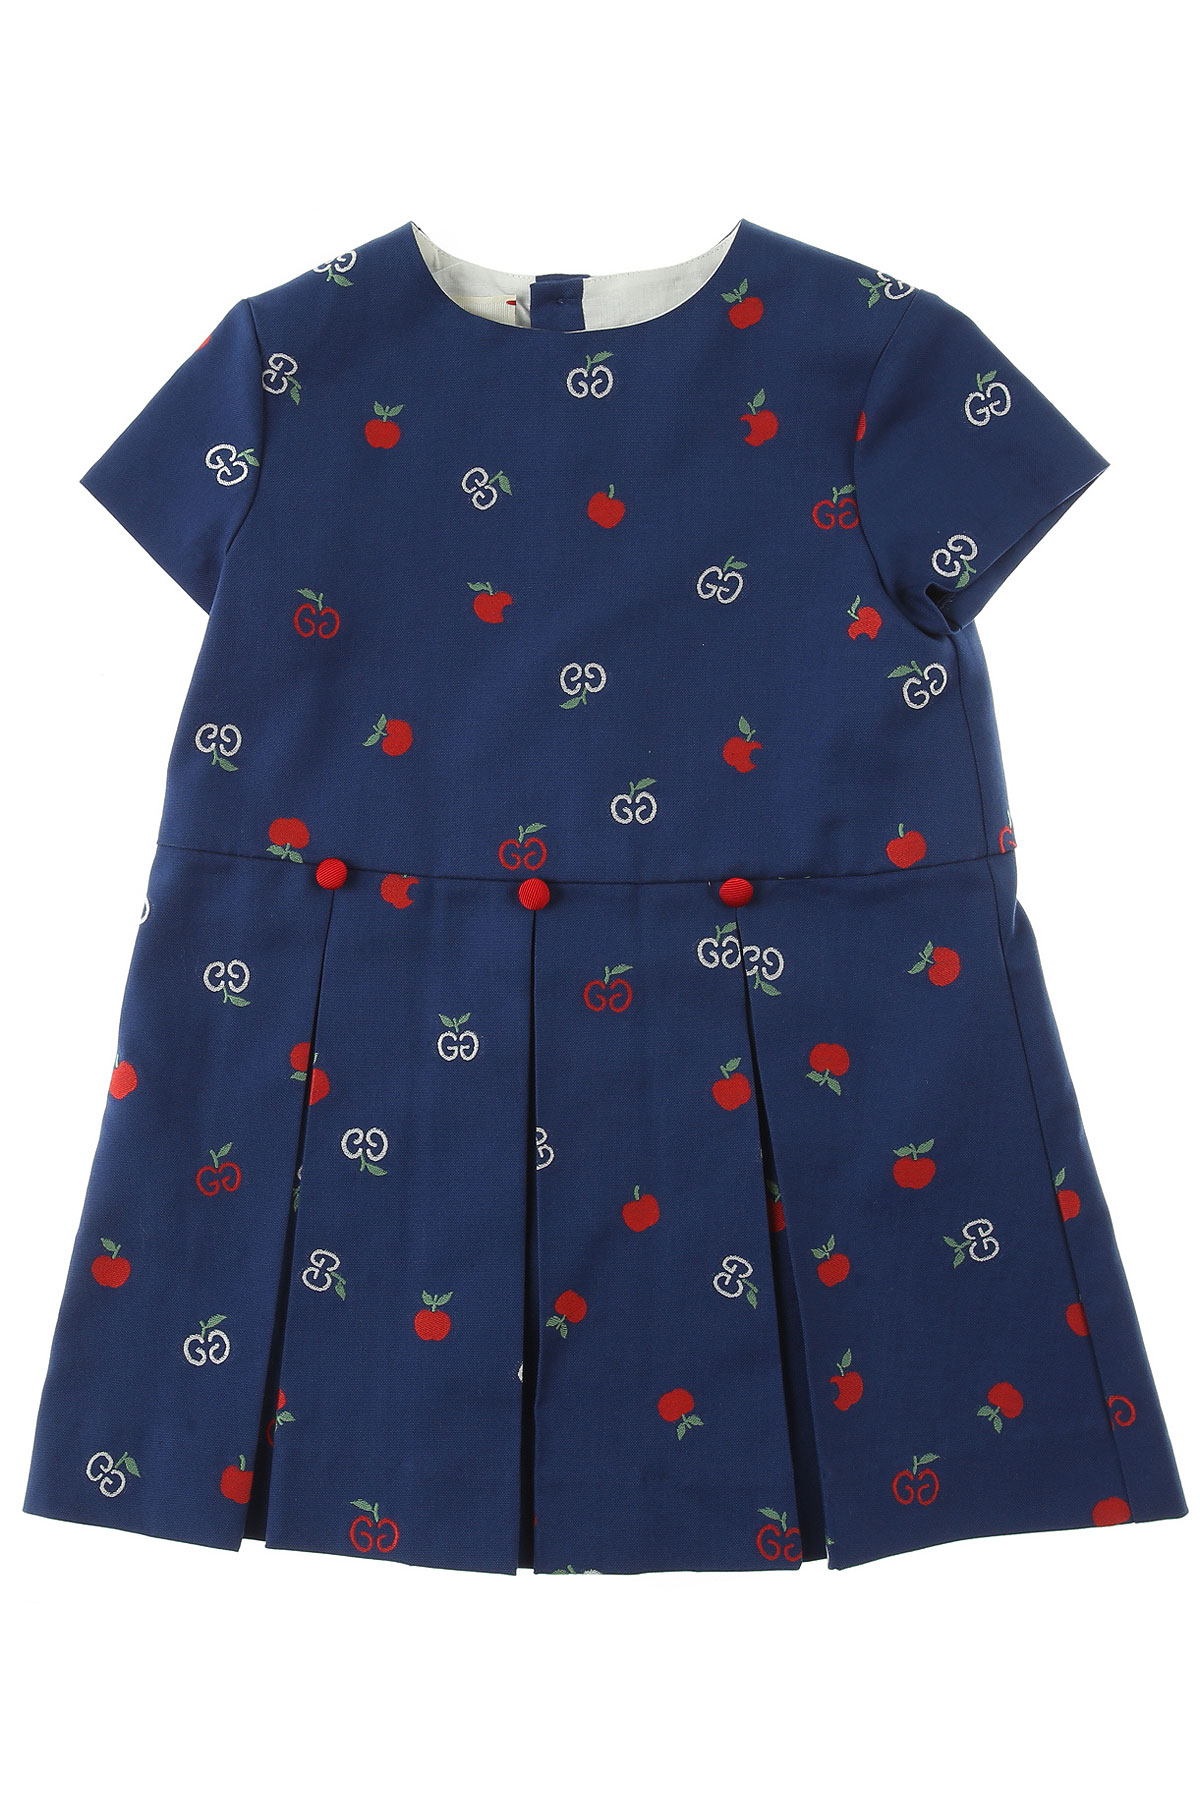 Gucci Baby Dress for Girls On Sale, Avio Blue, Cotton, 2019, 2Y 3Y